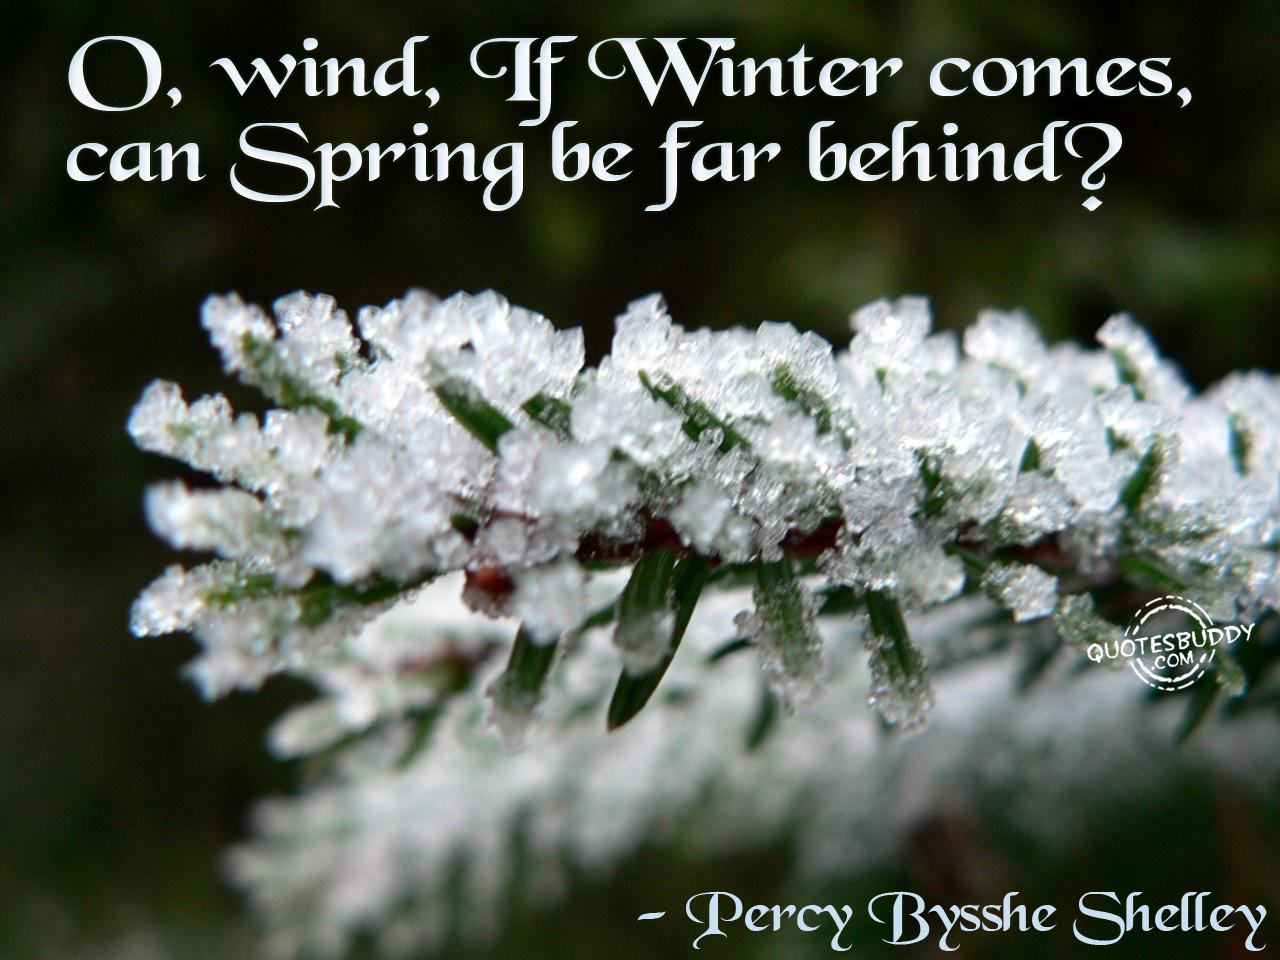 Percy bysshe shelley quotes quotesgram - O Wind If Winter Comes Can Spring Be Far Behind Percy Bysshe Shelley My All Time Favourite Line From A Poem